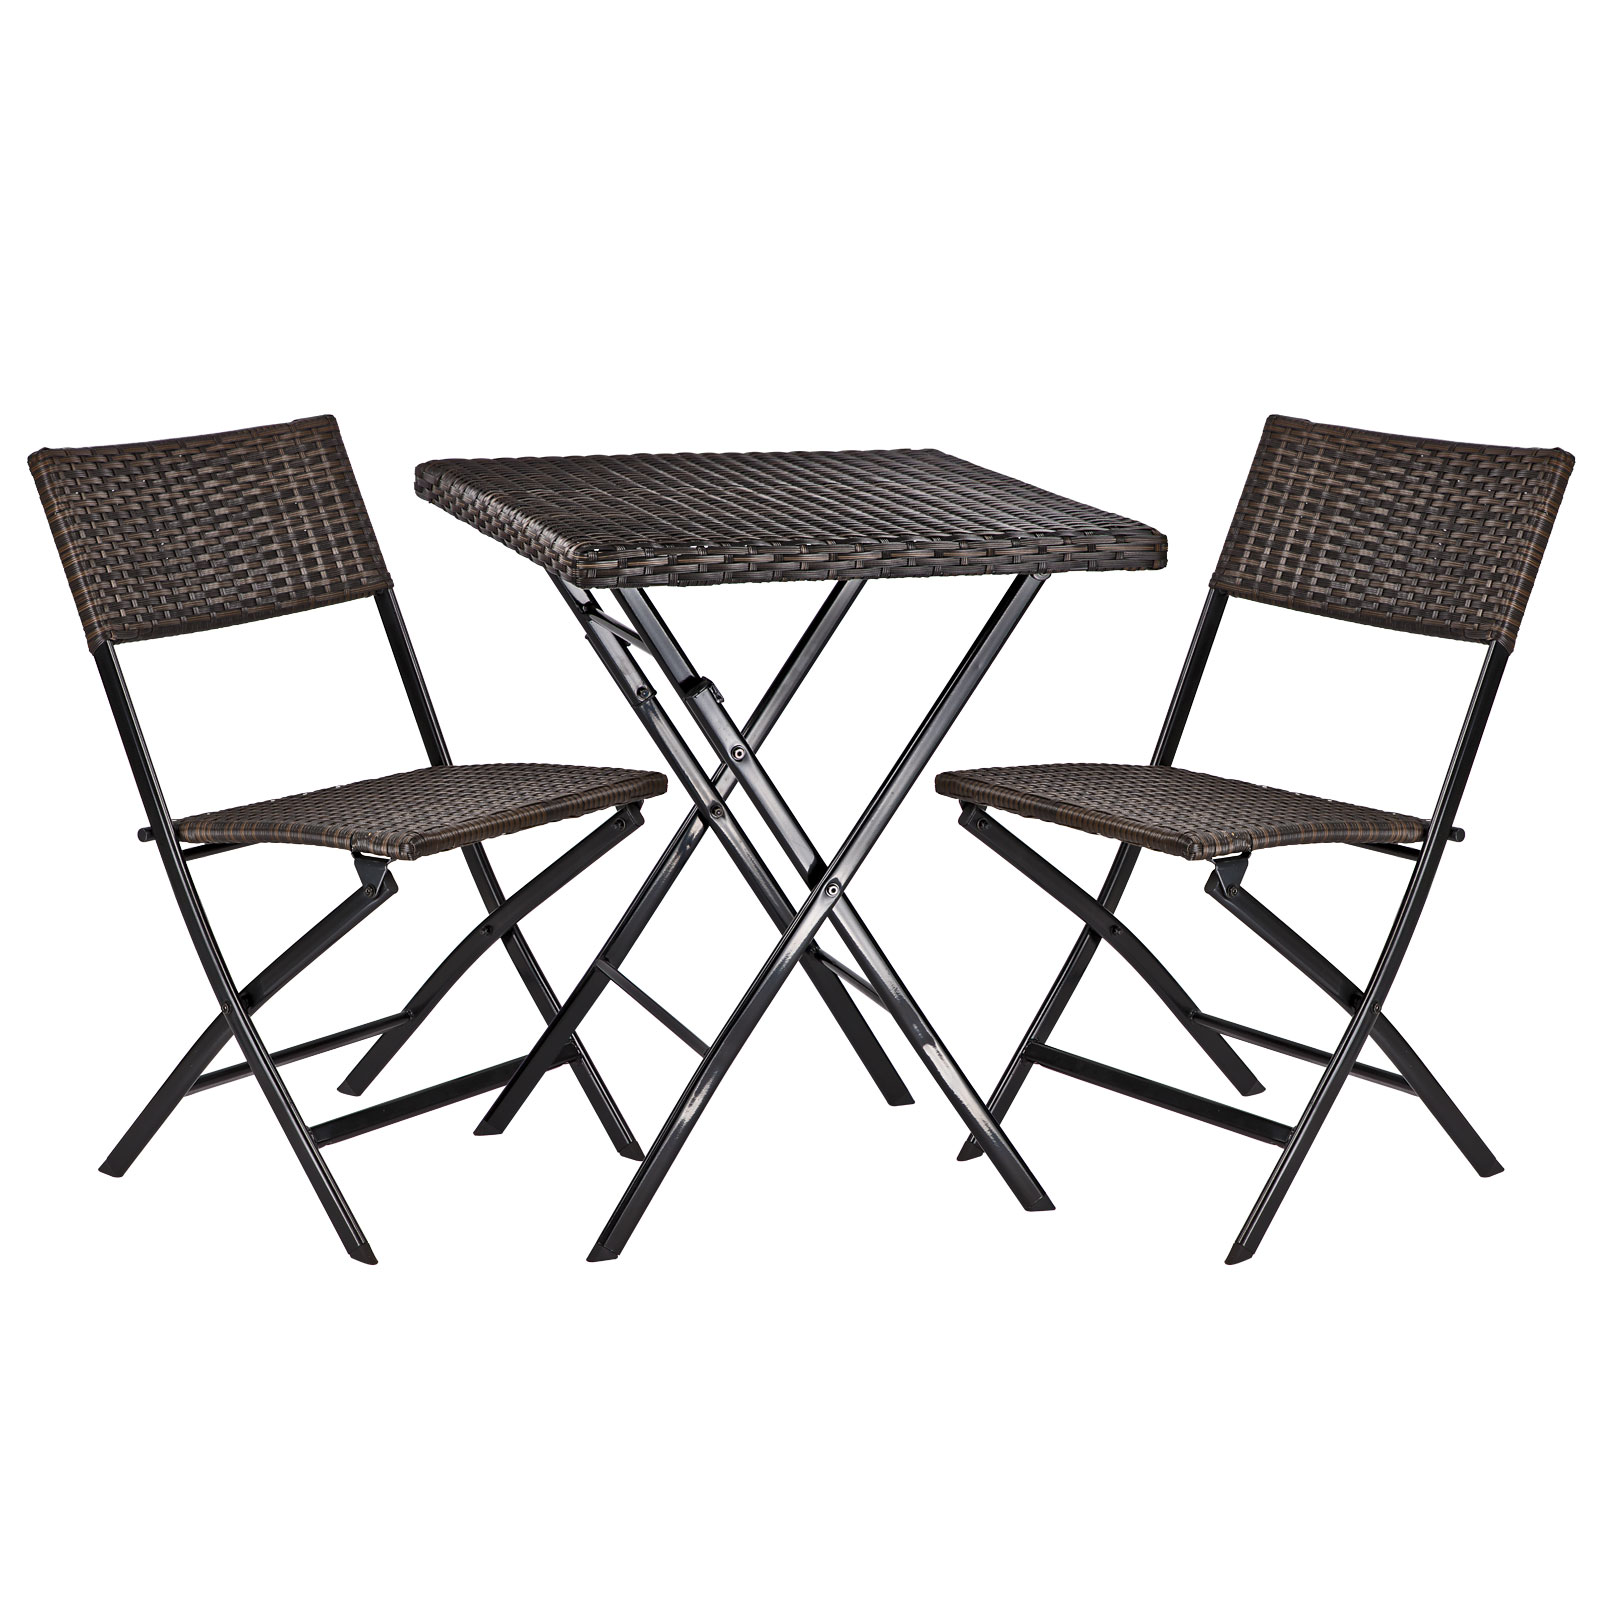 balkonm bel gartenset balkonset tisch 2 st hle klappbar poly rattan 919779 ebay. Black Bedroom Furniture Sets. Home Design Ideas